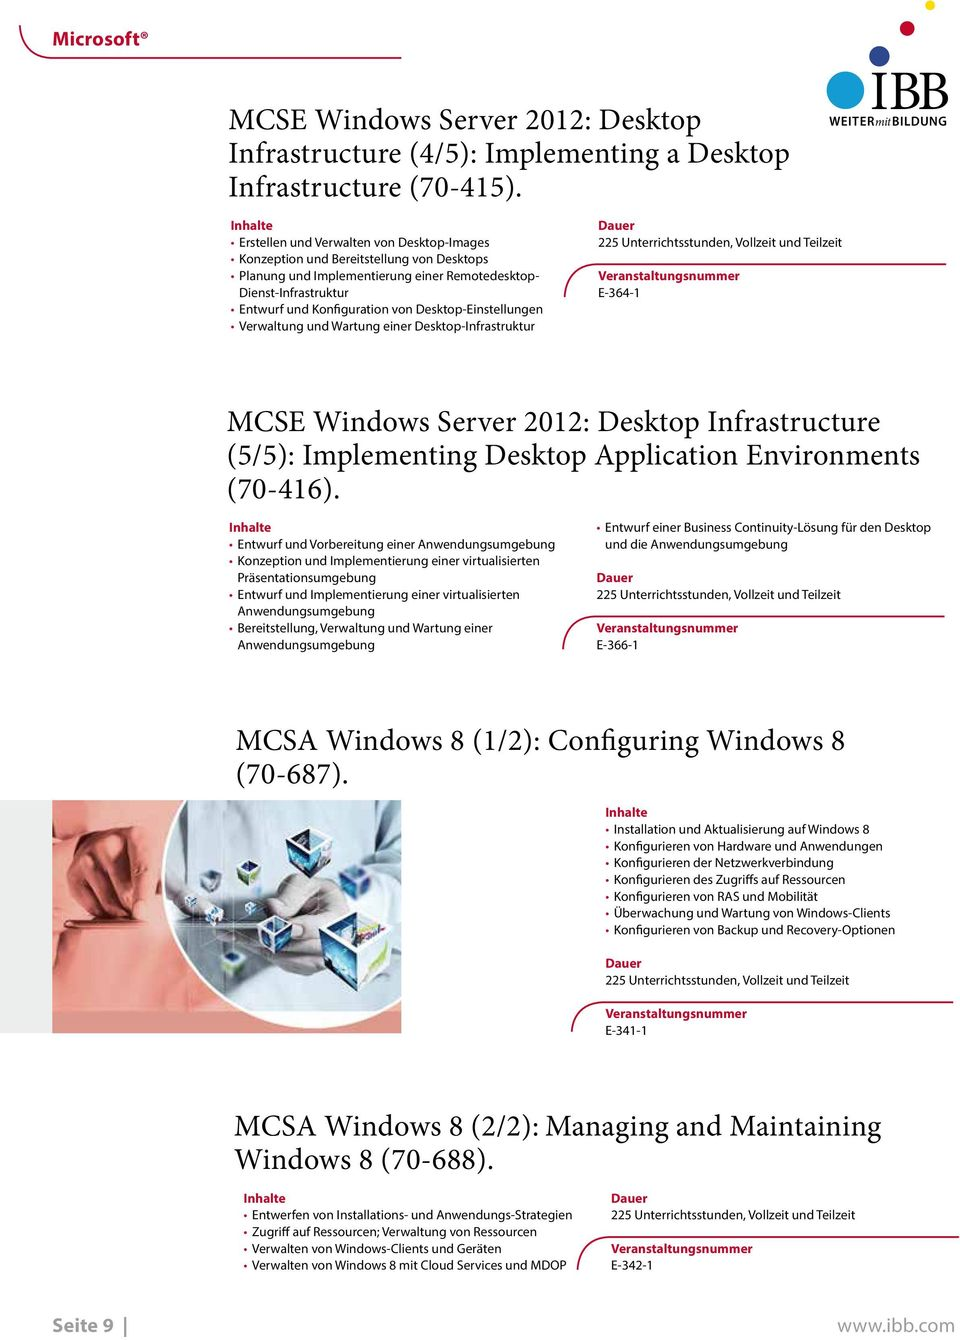 Desktop-Einstellungen Verwaltung und Wartung einer Desktop-Infrastruktur E-364-1 MCSE Windows Server 2012: Desktop Infrastructure (5/5): Implementing Desktop Application Environments (70-416).